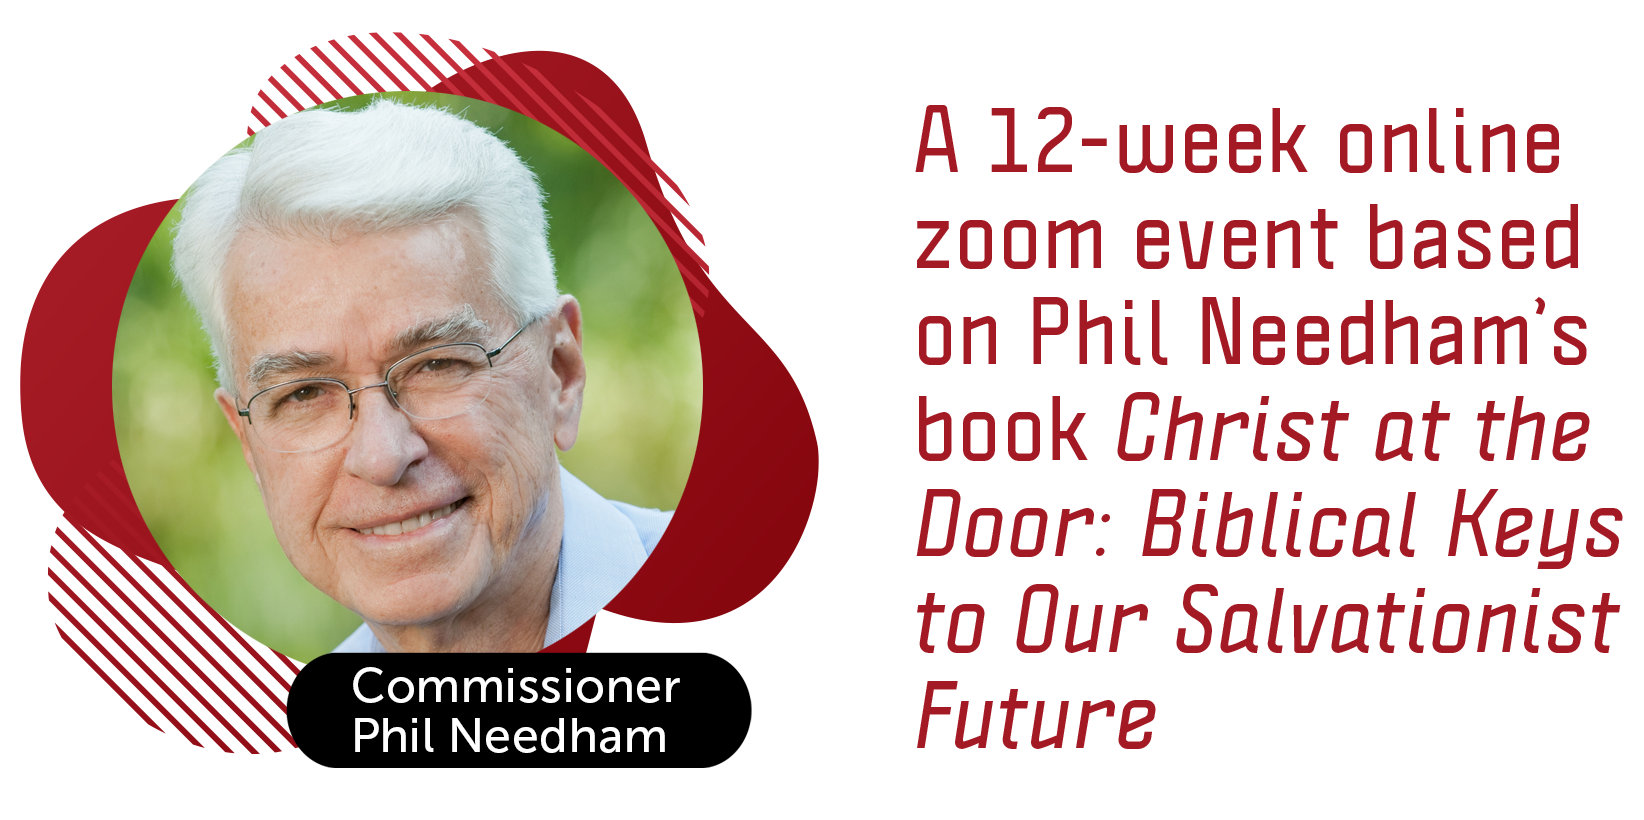 A 12-week online zoom event based on Phil Needham's book Christ at the Door: Biblical Keys to Our Salvationist Future